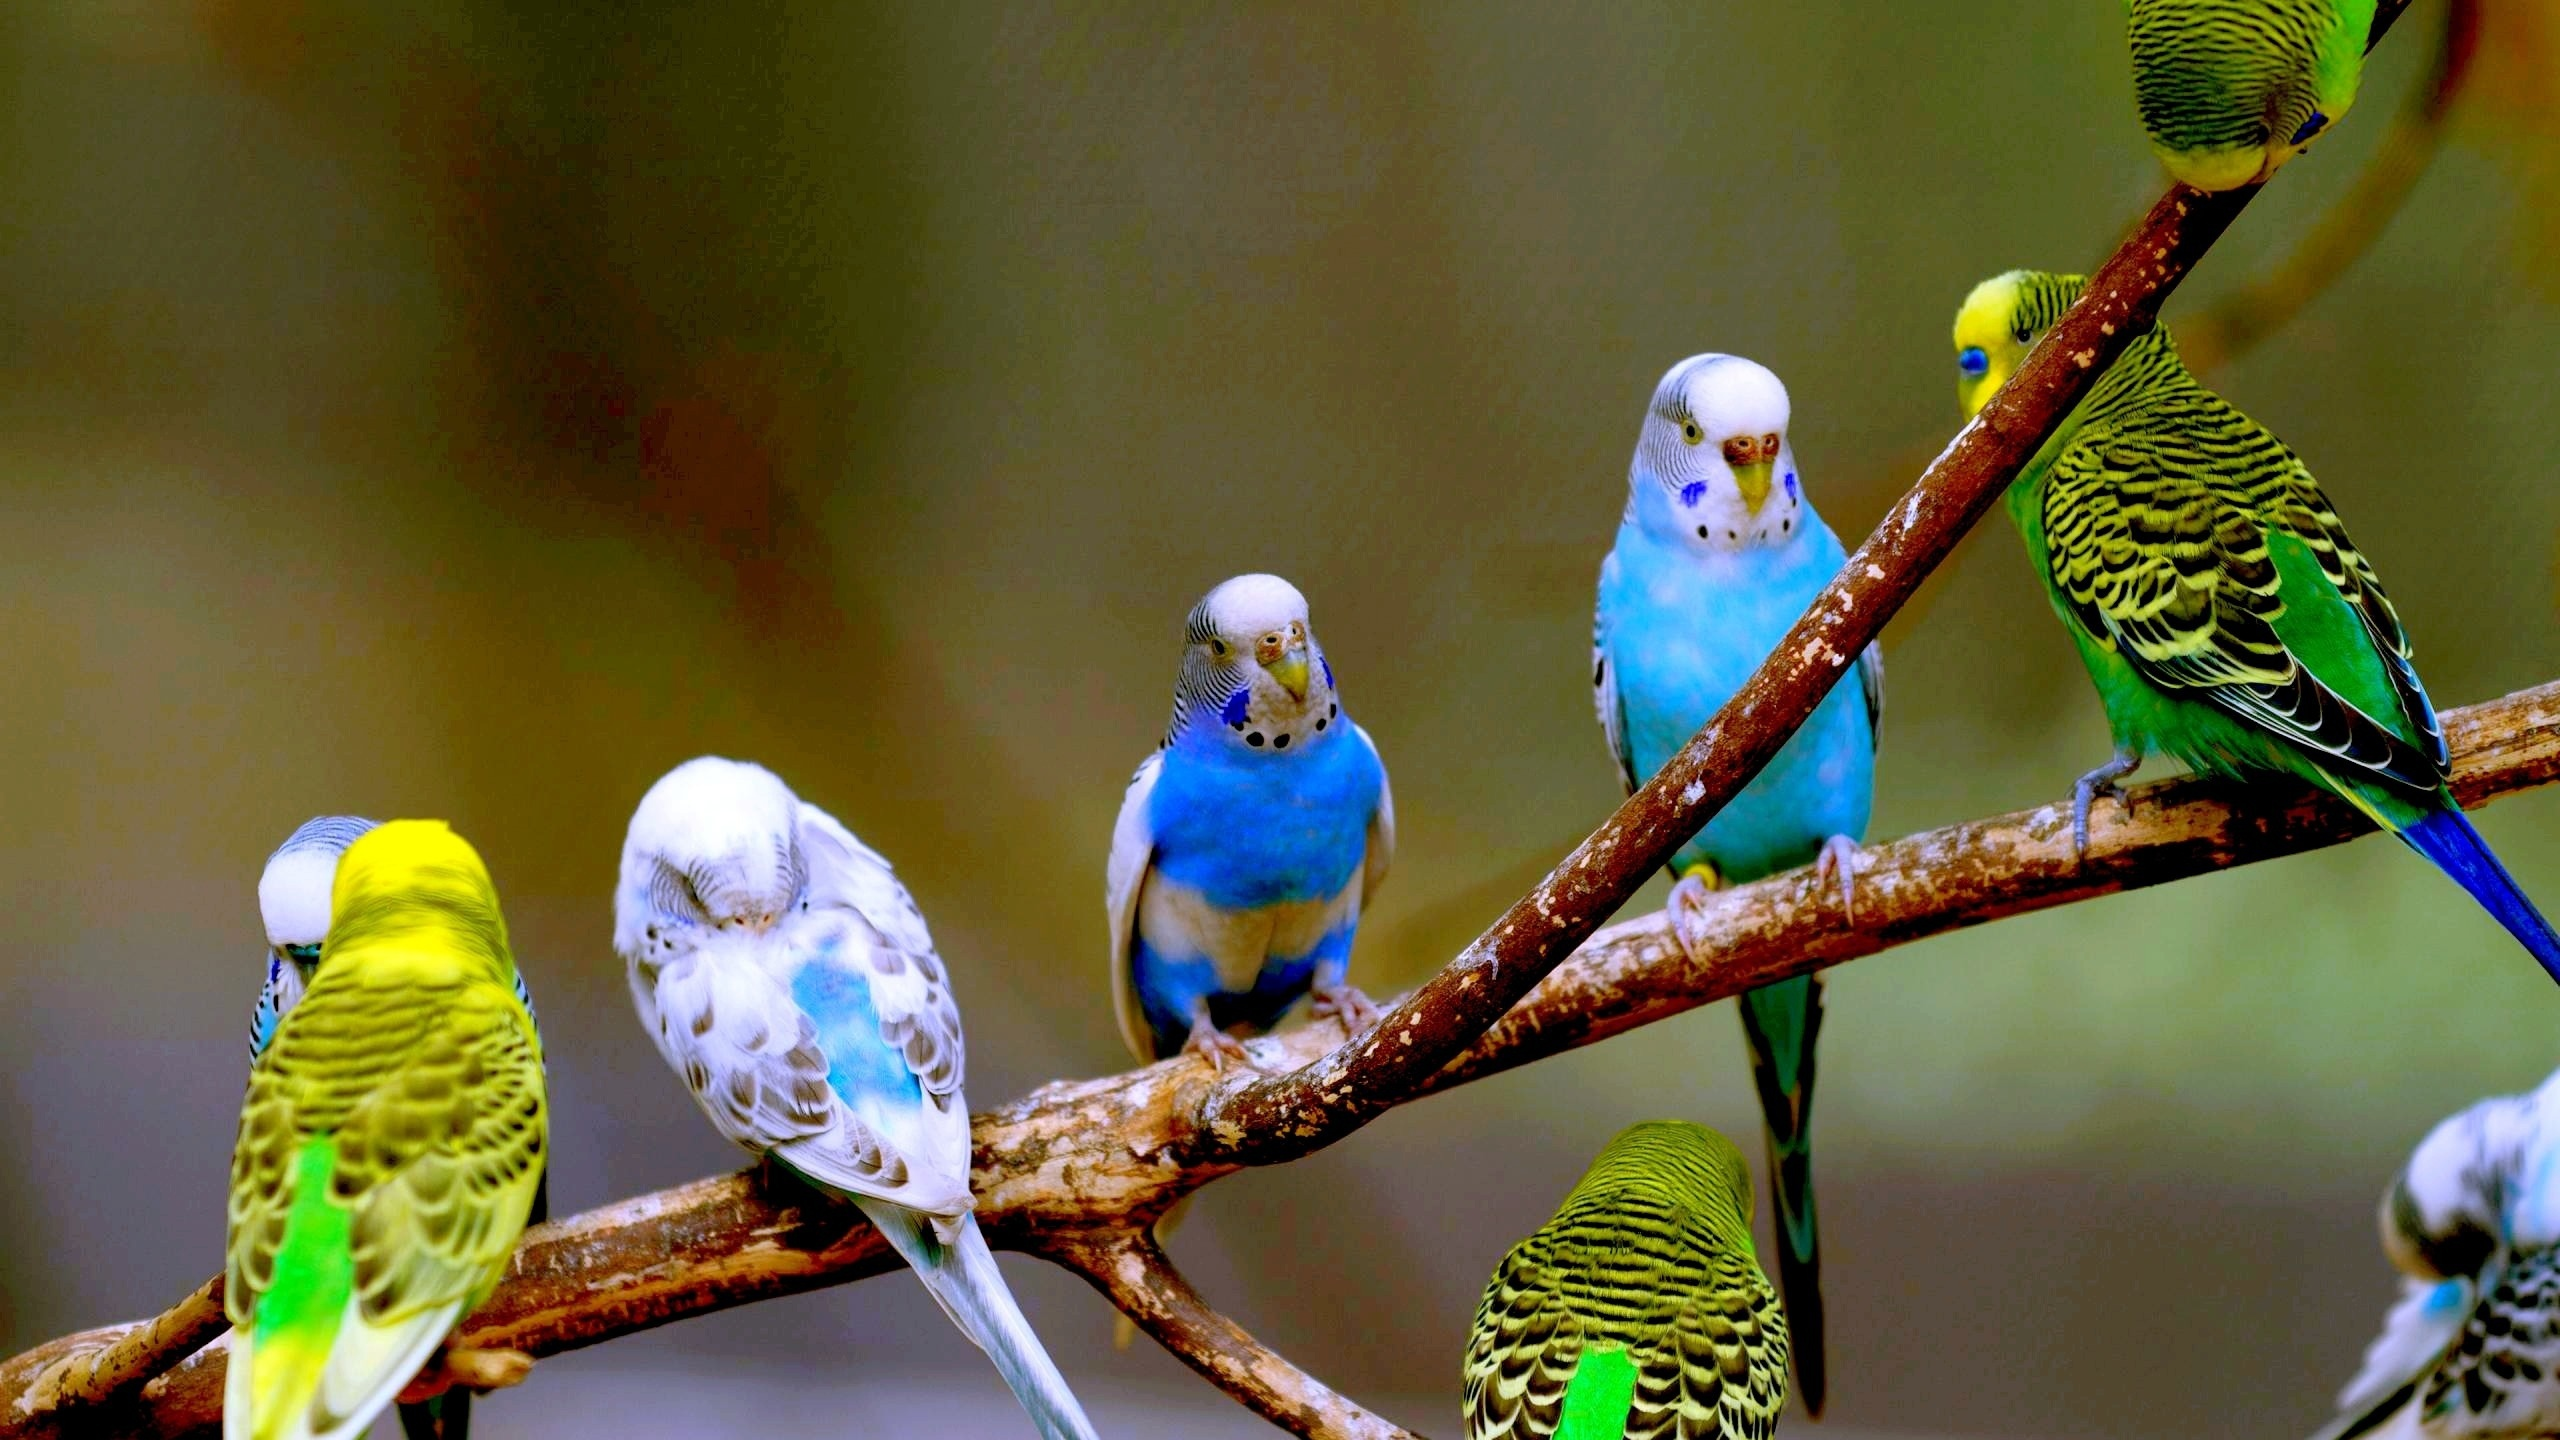 Budgie Images